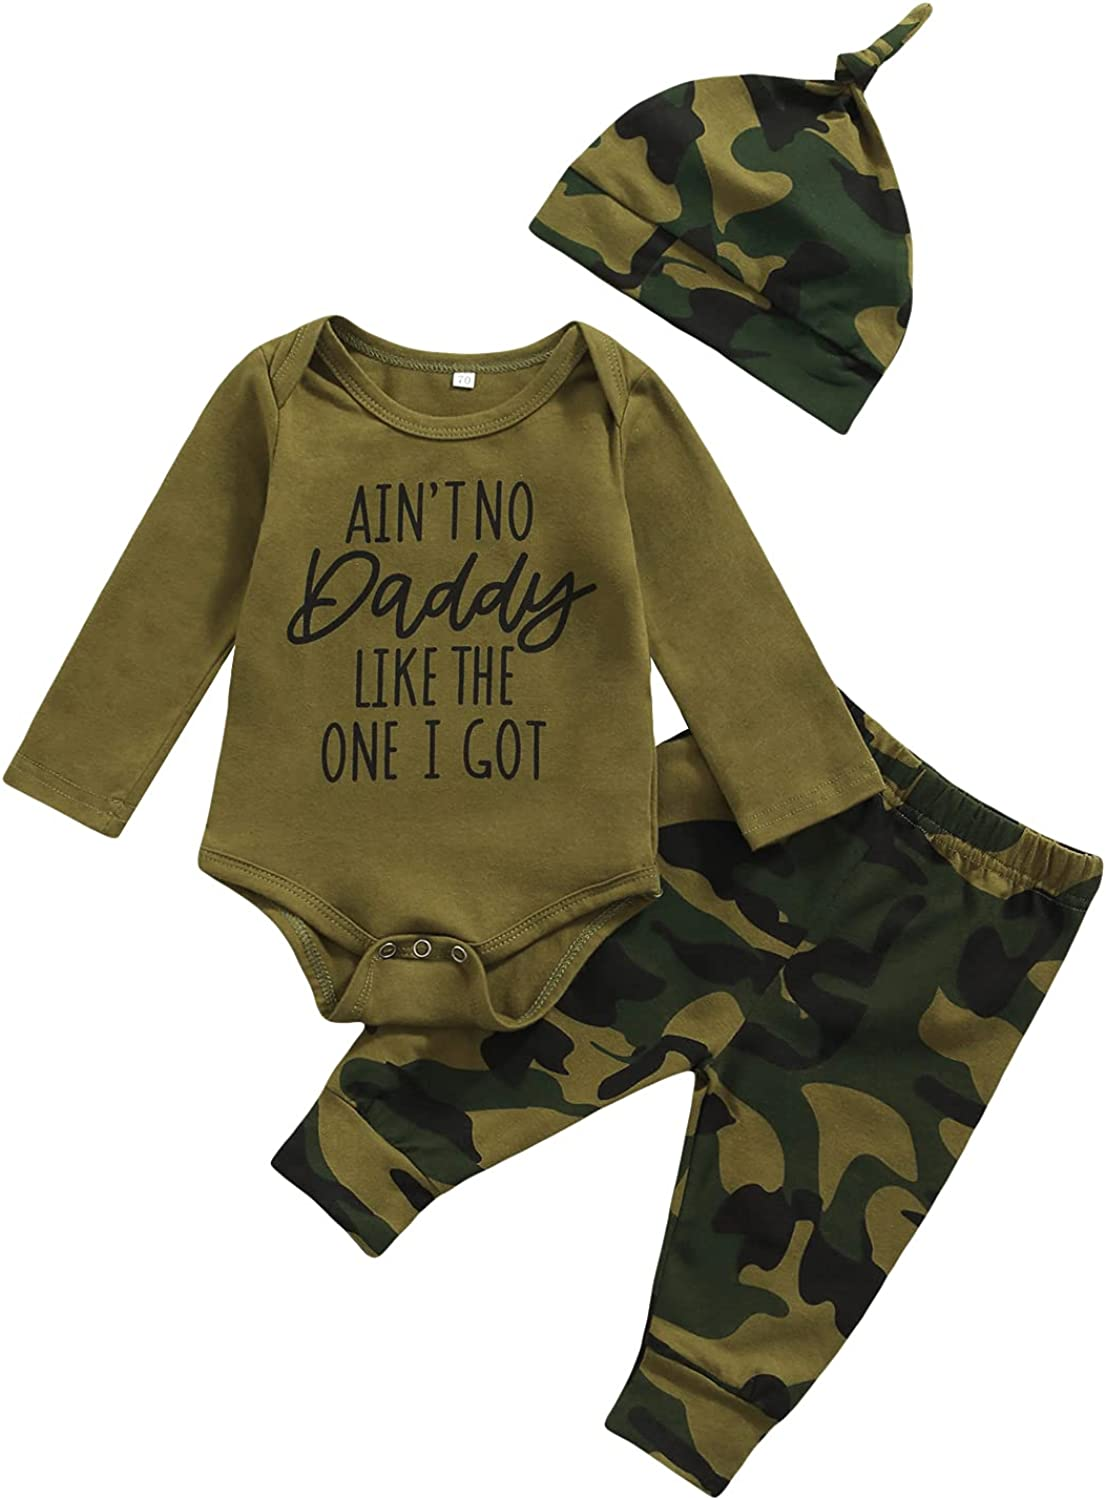 Winter Newborn Infant Baby Girl Boy Clothes Camouflage Outfit Letter Print Romper Camo Pant Hat 3Pcs Toddler Girl Clothes